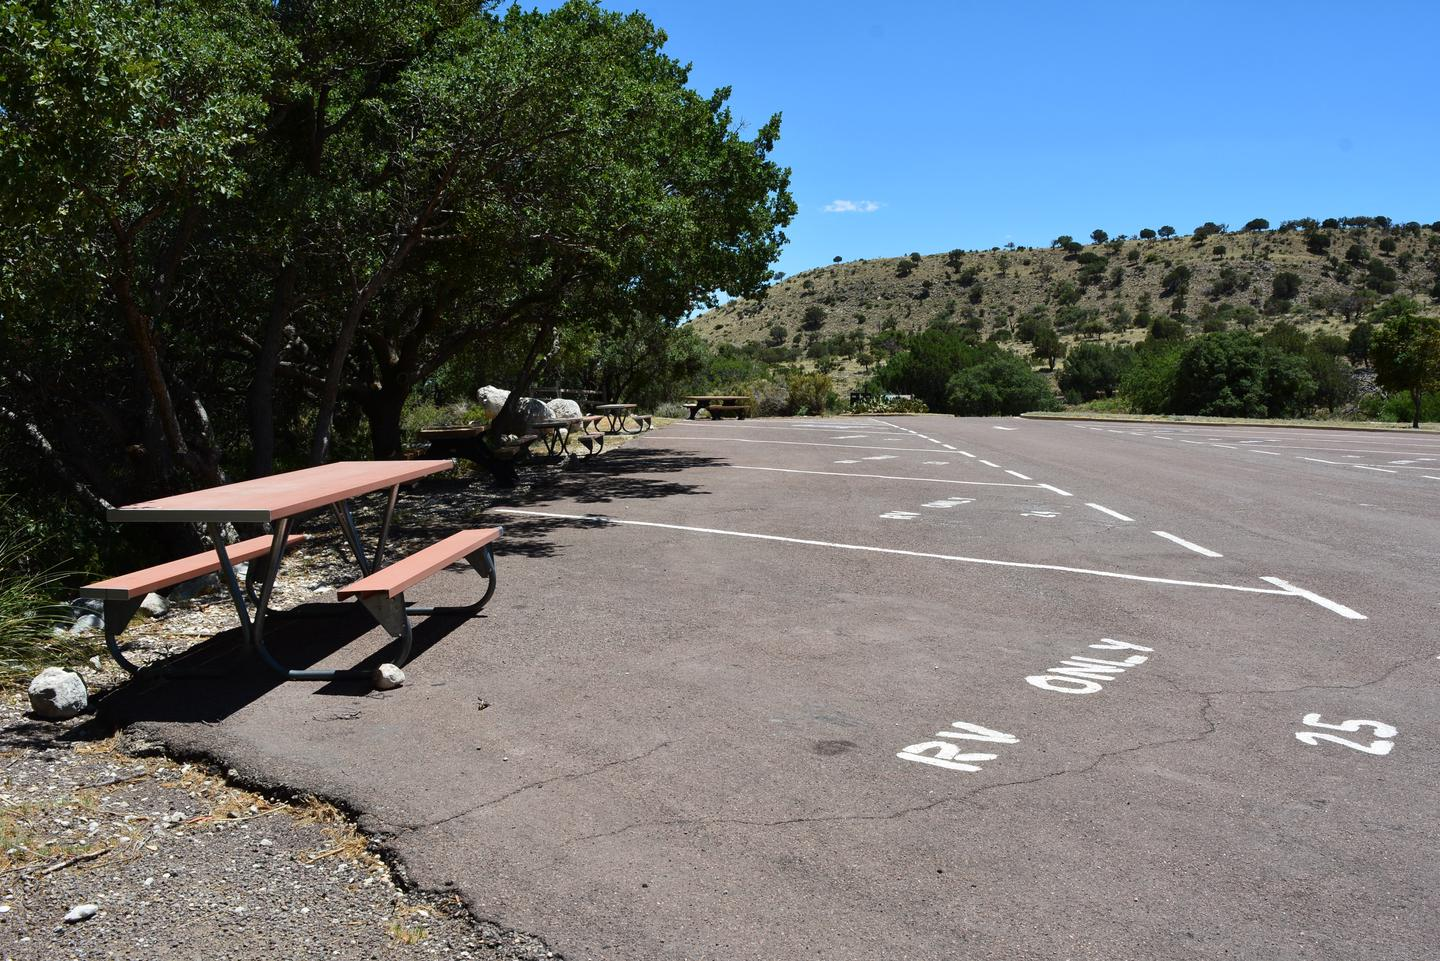 RV site 25 is located at the end of a row of 5 RV sites.  This view show the paved site with picnic table and trees along the back edge.RV site 25 is located at the end of a row of 5 RV sites. Low tree limbs may prevent high profile vehicles.